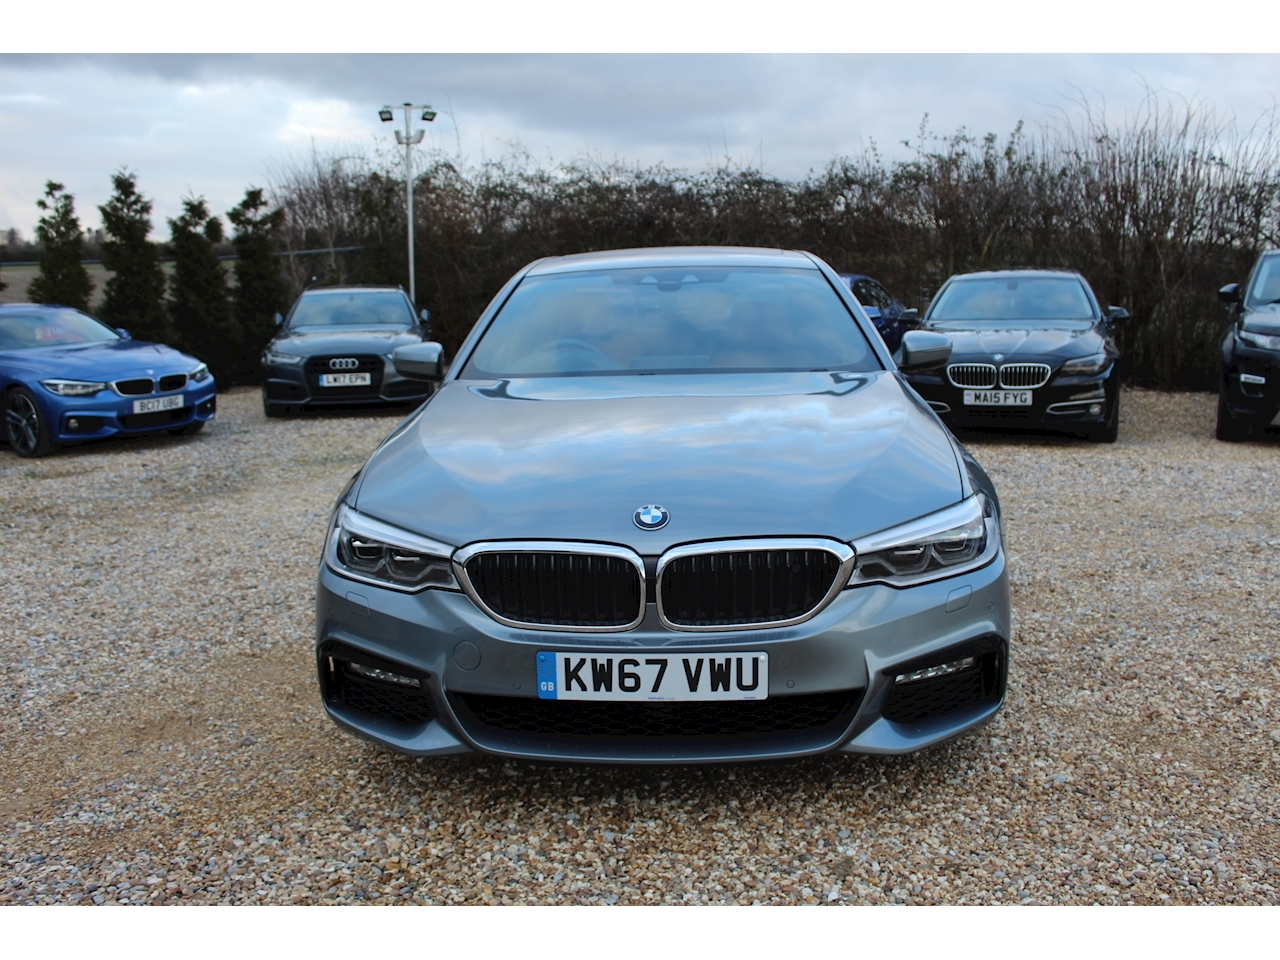 BMW 2.0 530e iPerformance 9.2kWh M Sport Saloon 4dr Petrol Plug-in Hybrid Auto (s/s) (252 ps)